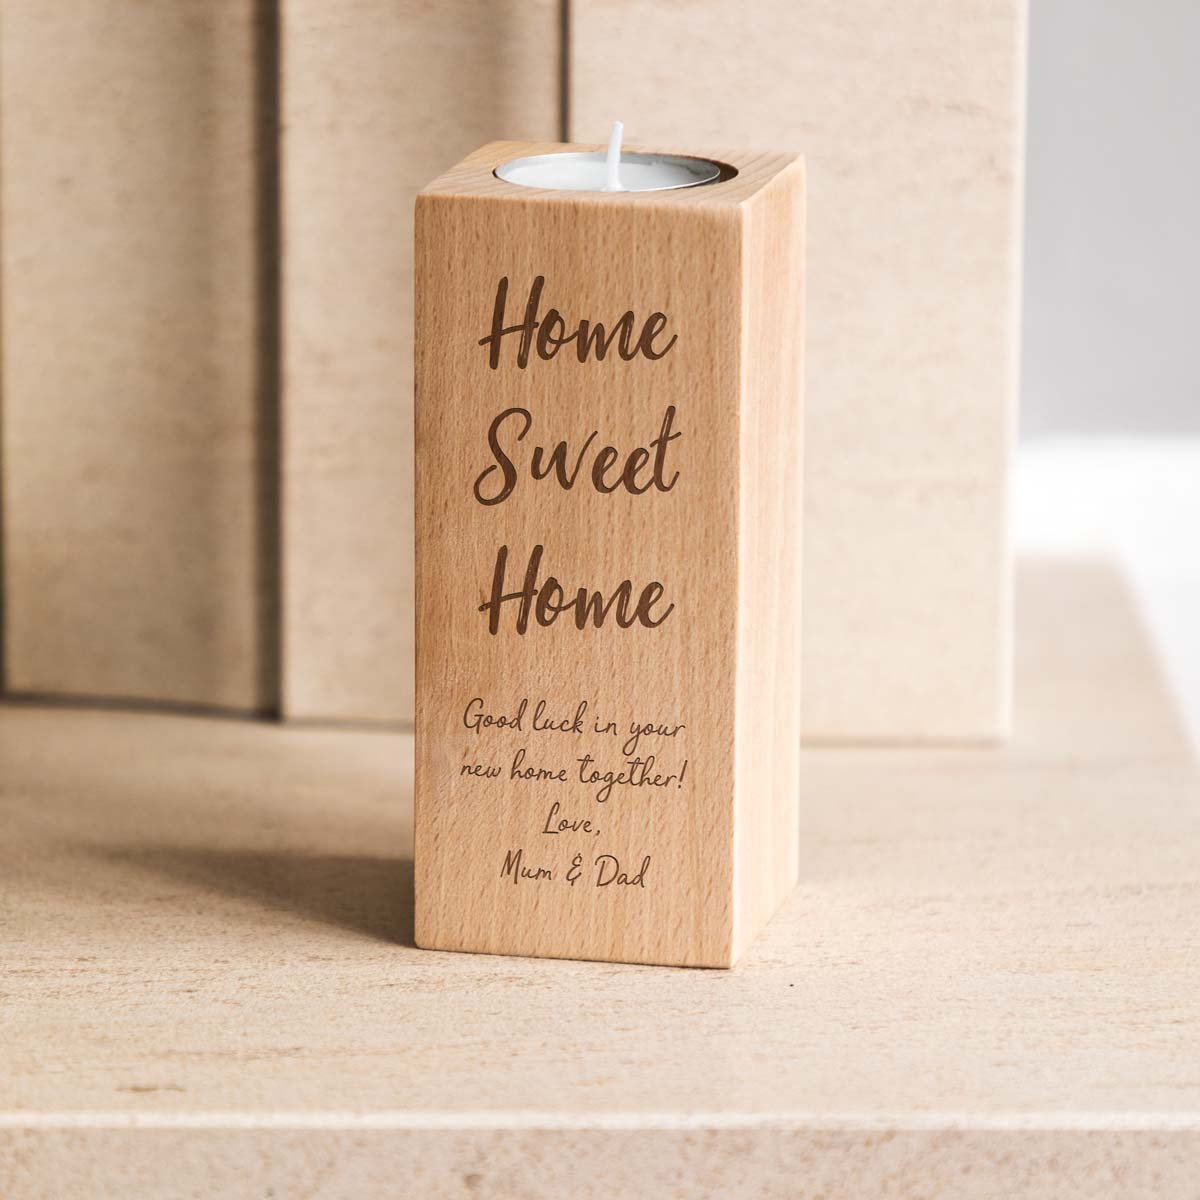 Personalised Home Sweet Home Candle Holder